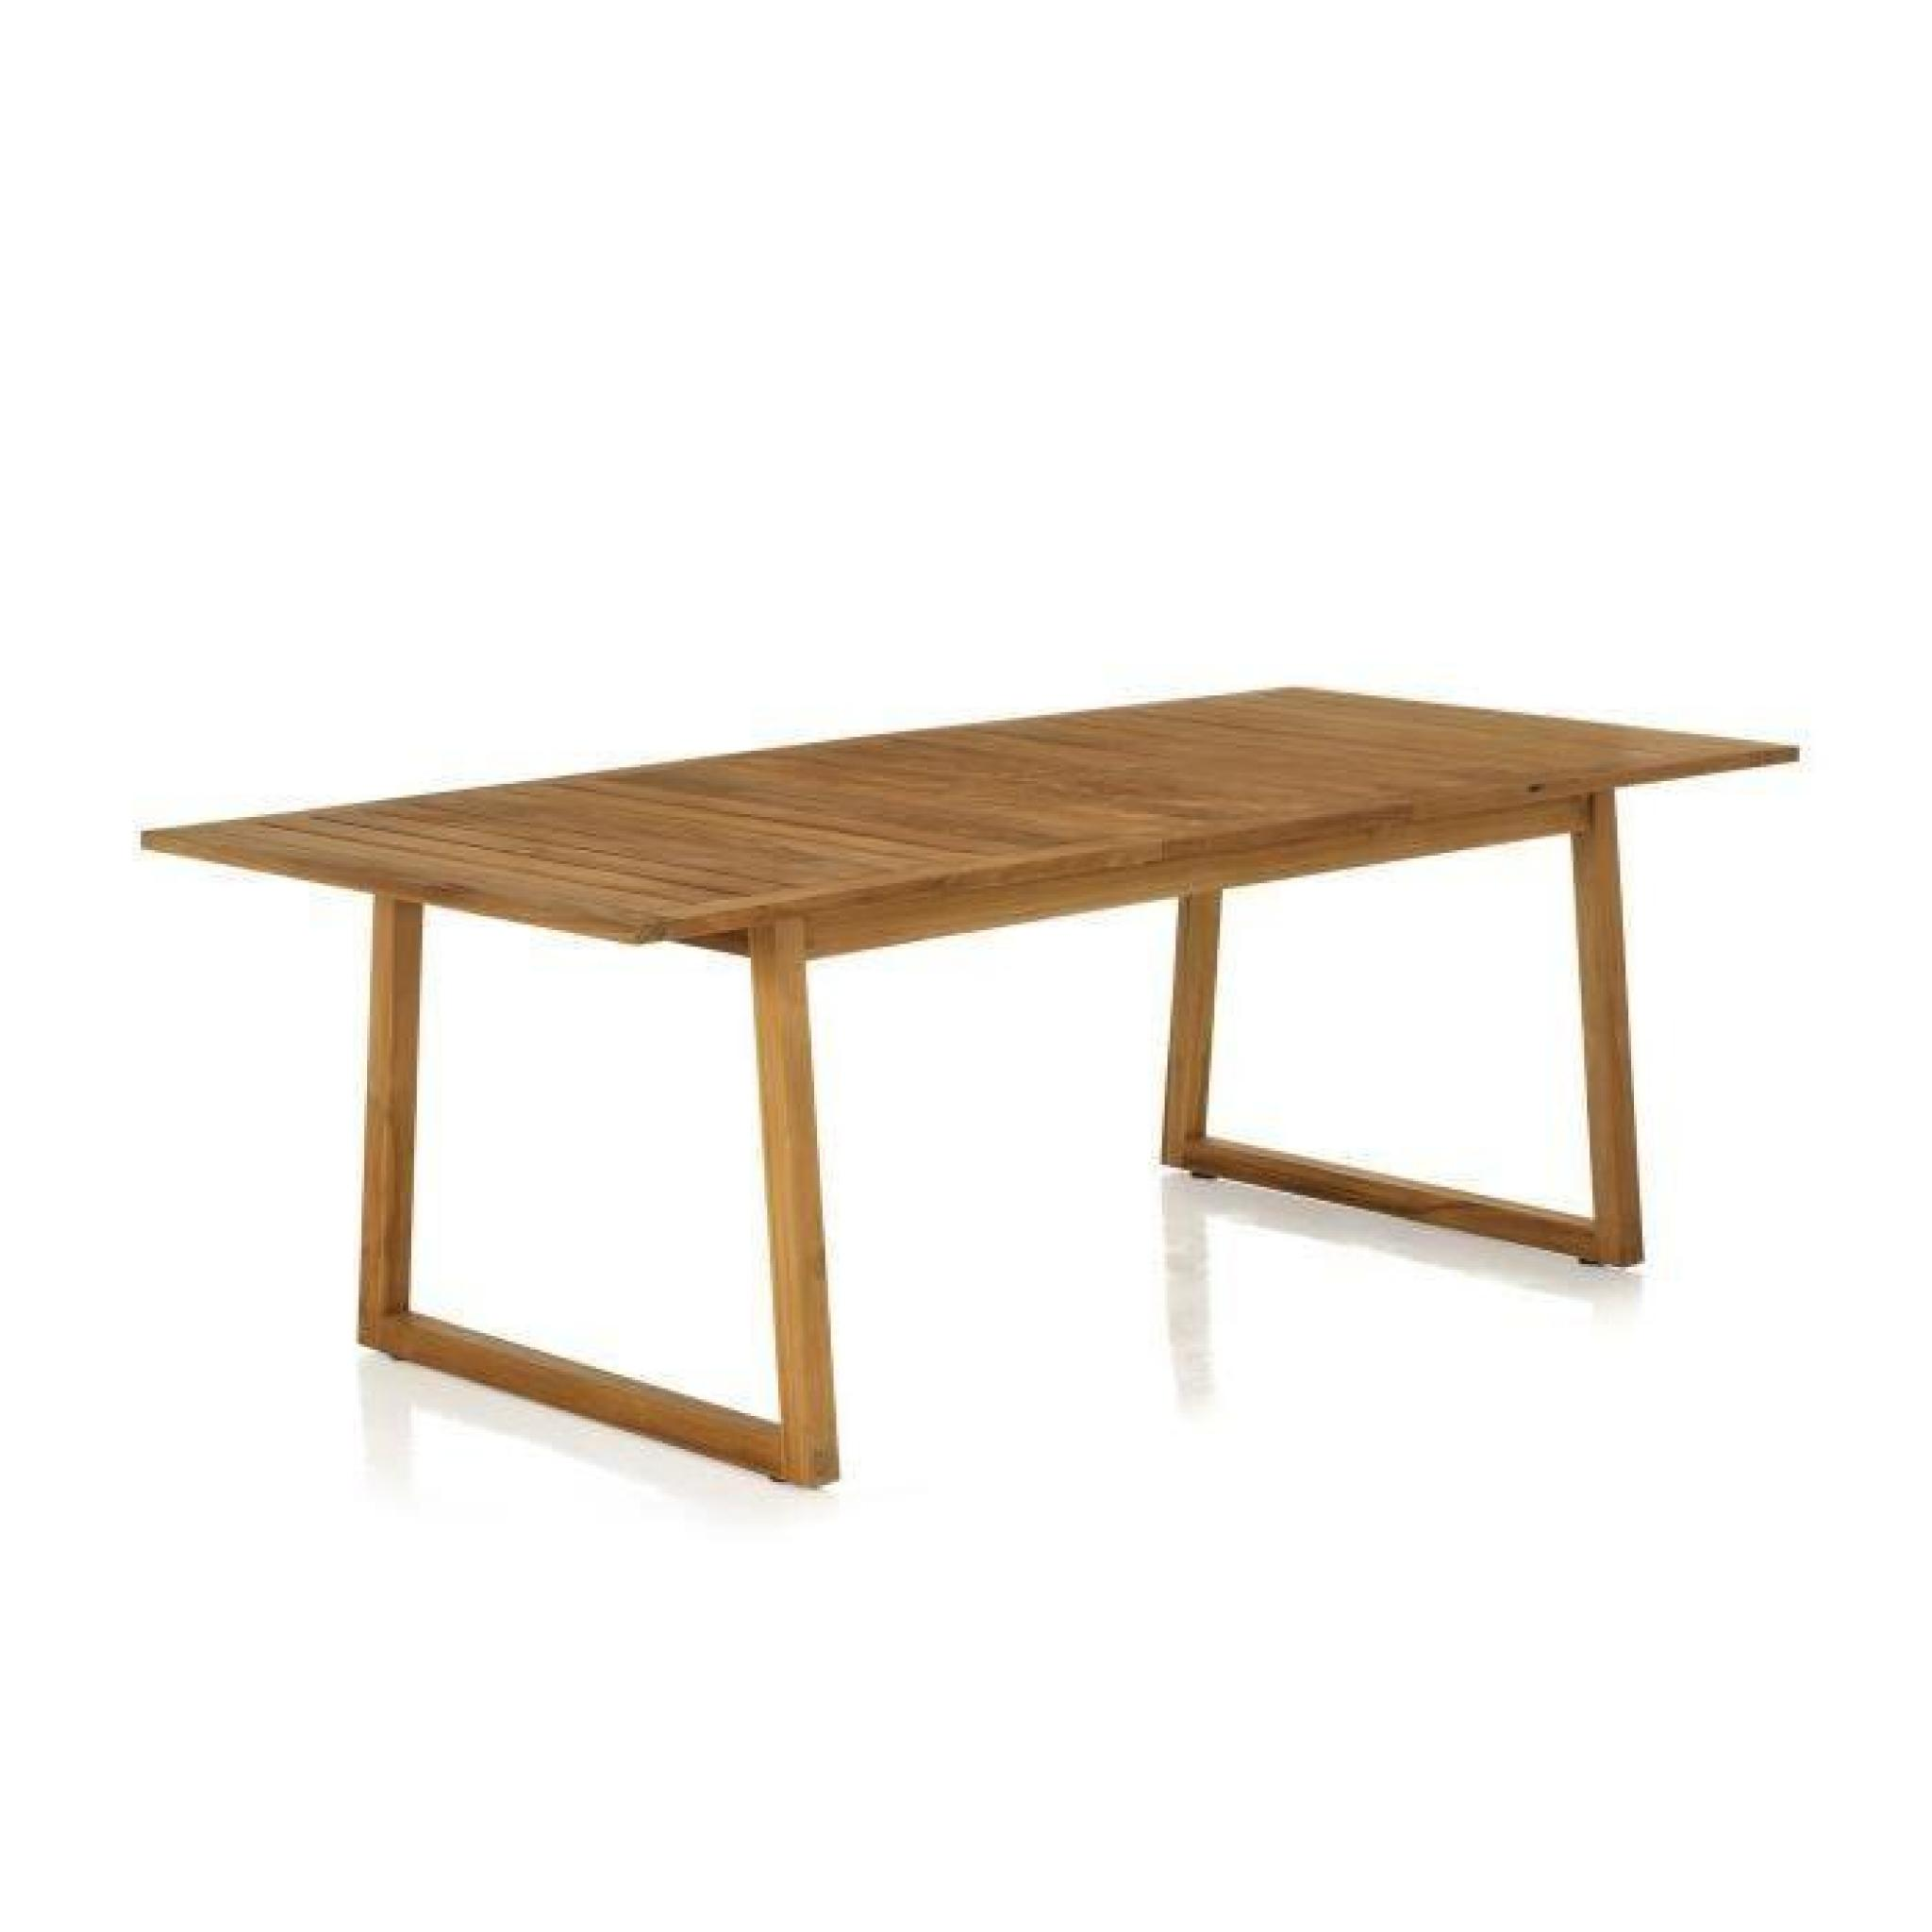 Mia table de jardin rectangulaire en teck allonge papillon naturel achat vente table de - Table de jardin rallonge papillon ...